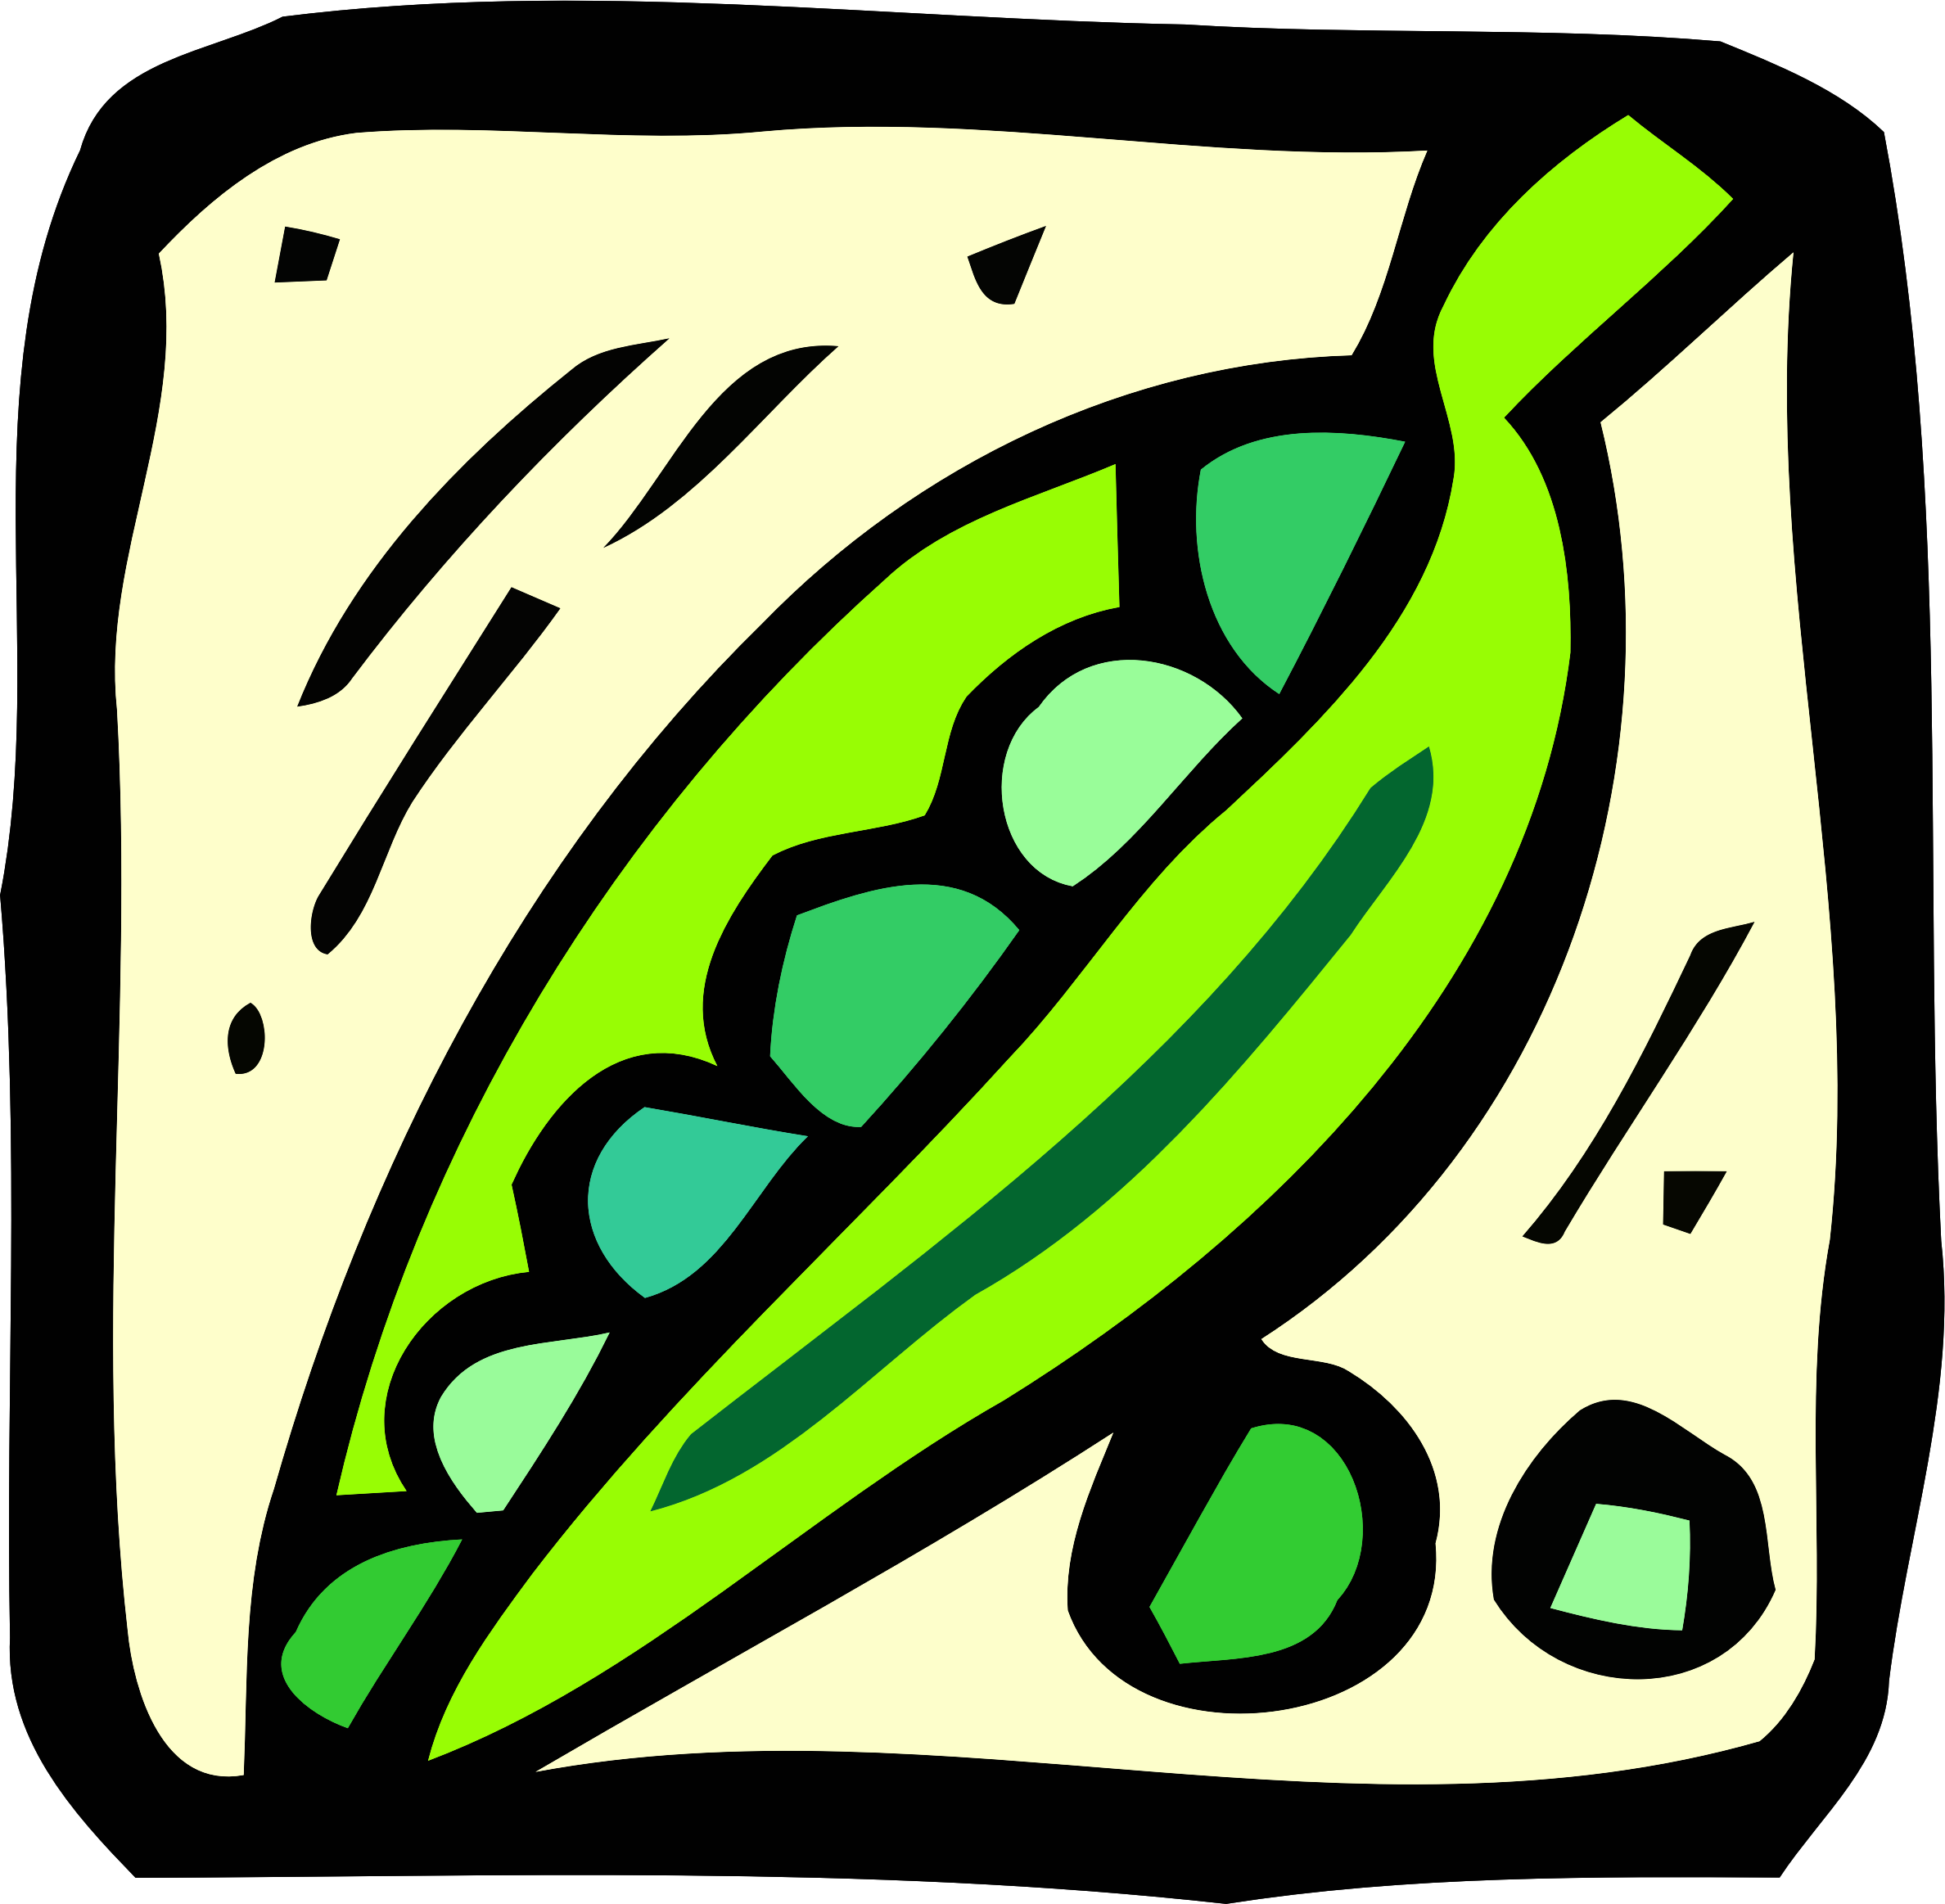 Food and drink icon - peas by Firkin